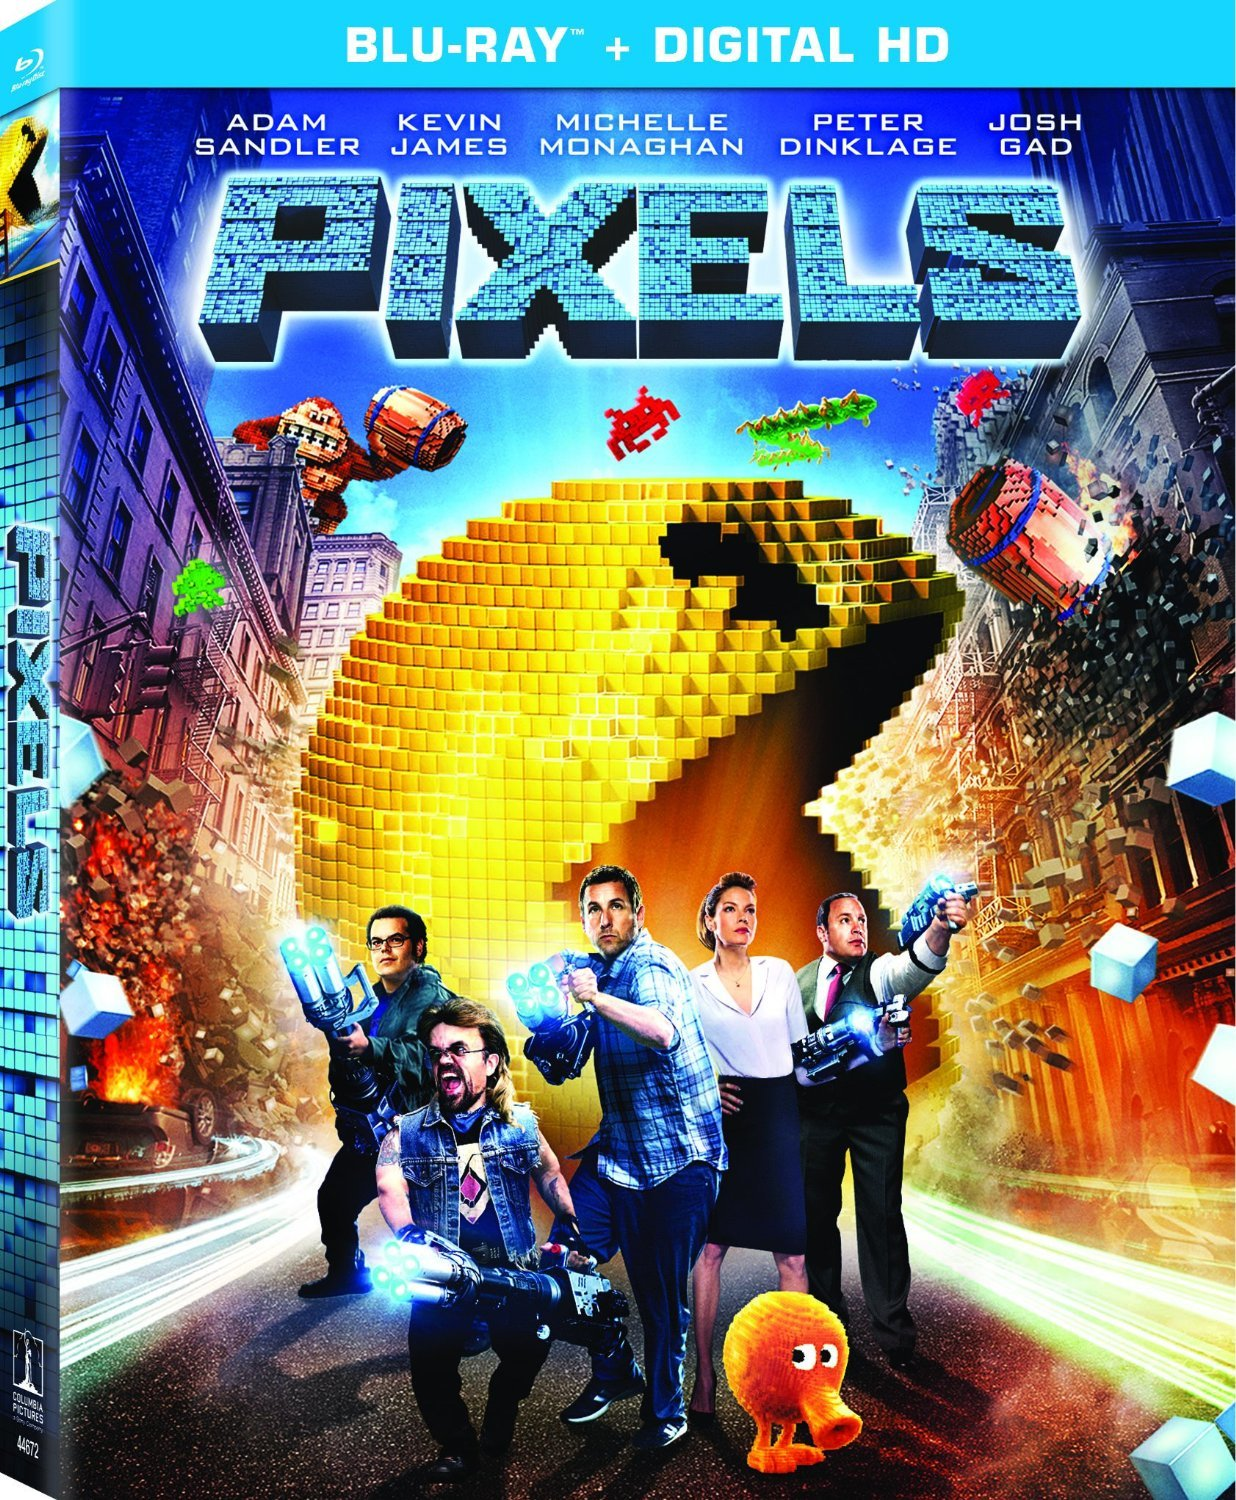 Pixeles (2015) 1080p BD25 Blu-ray Cover Caratula